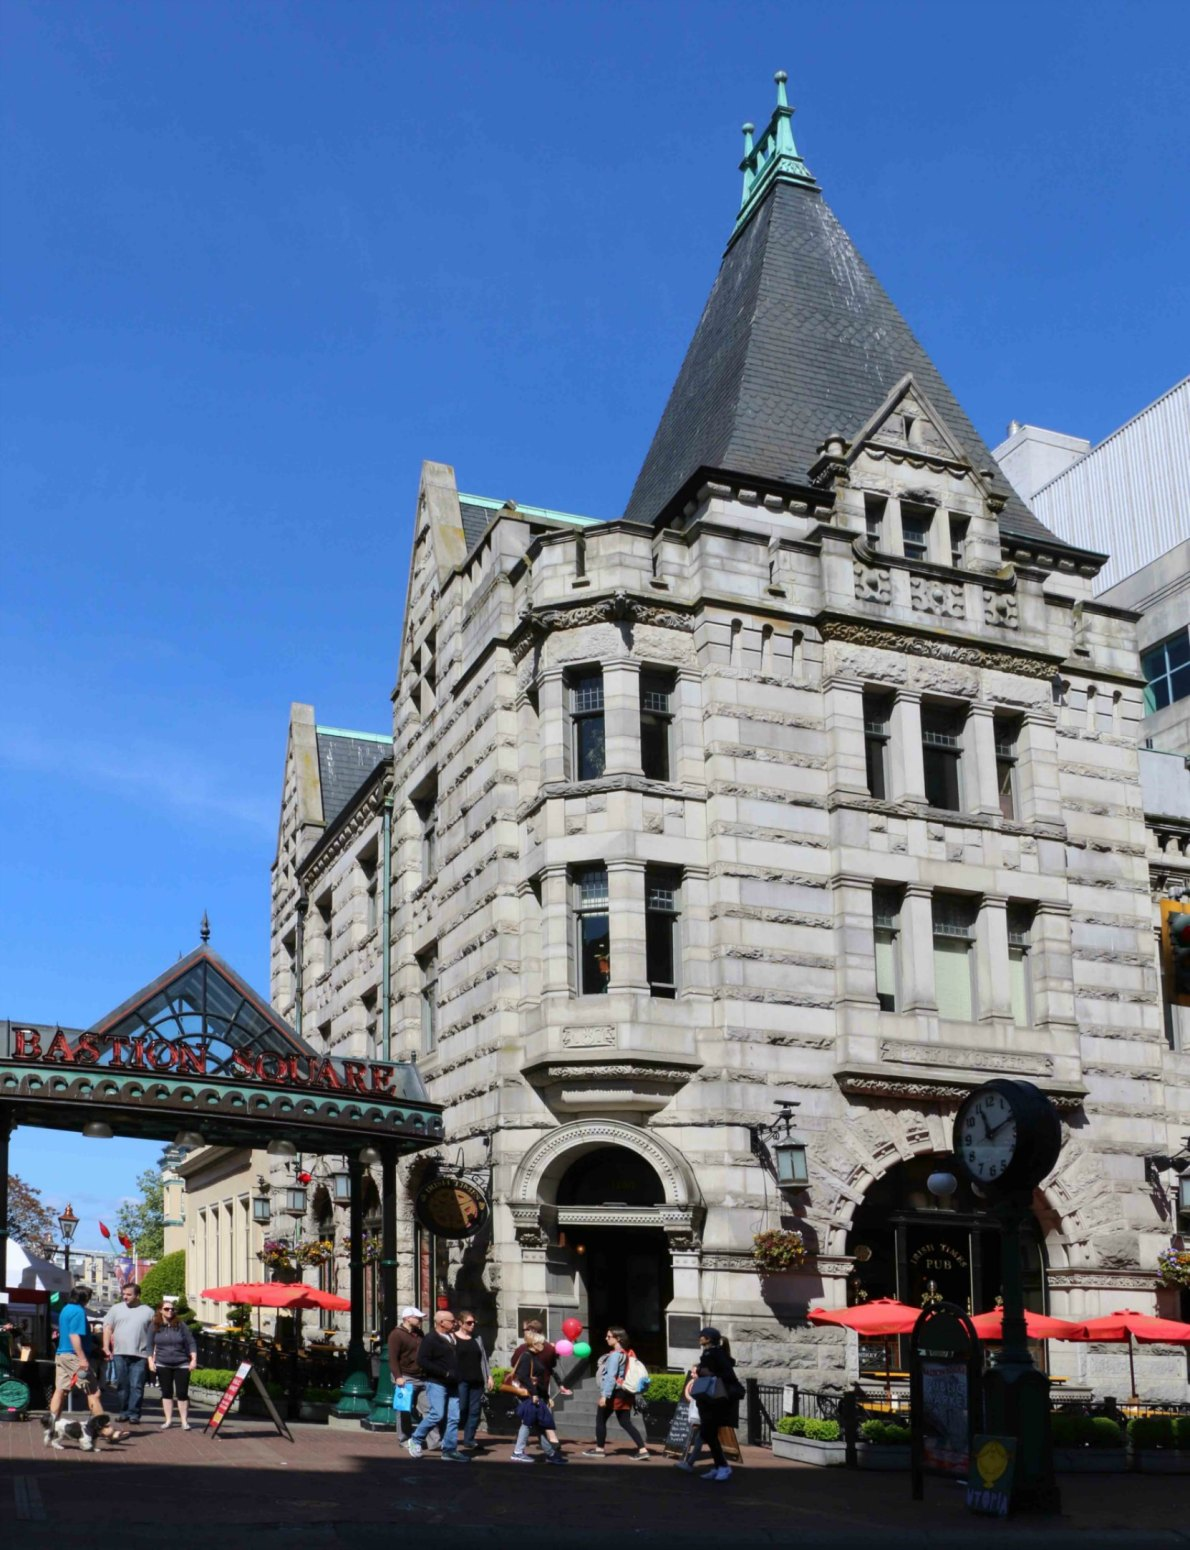 1200 Government Street, built in 1897 for the Bank of Montreal by architect Francis Rattenbury. It is now the Irish Times Pub. (photo by Victoria Online Sightseeing Tours)